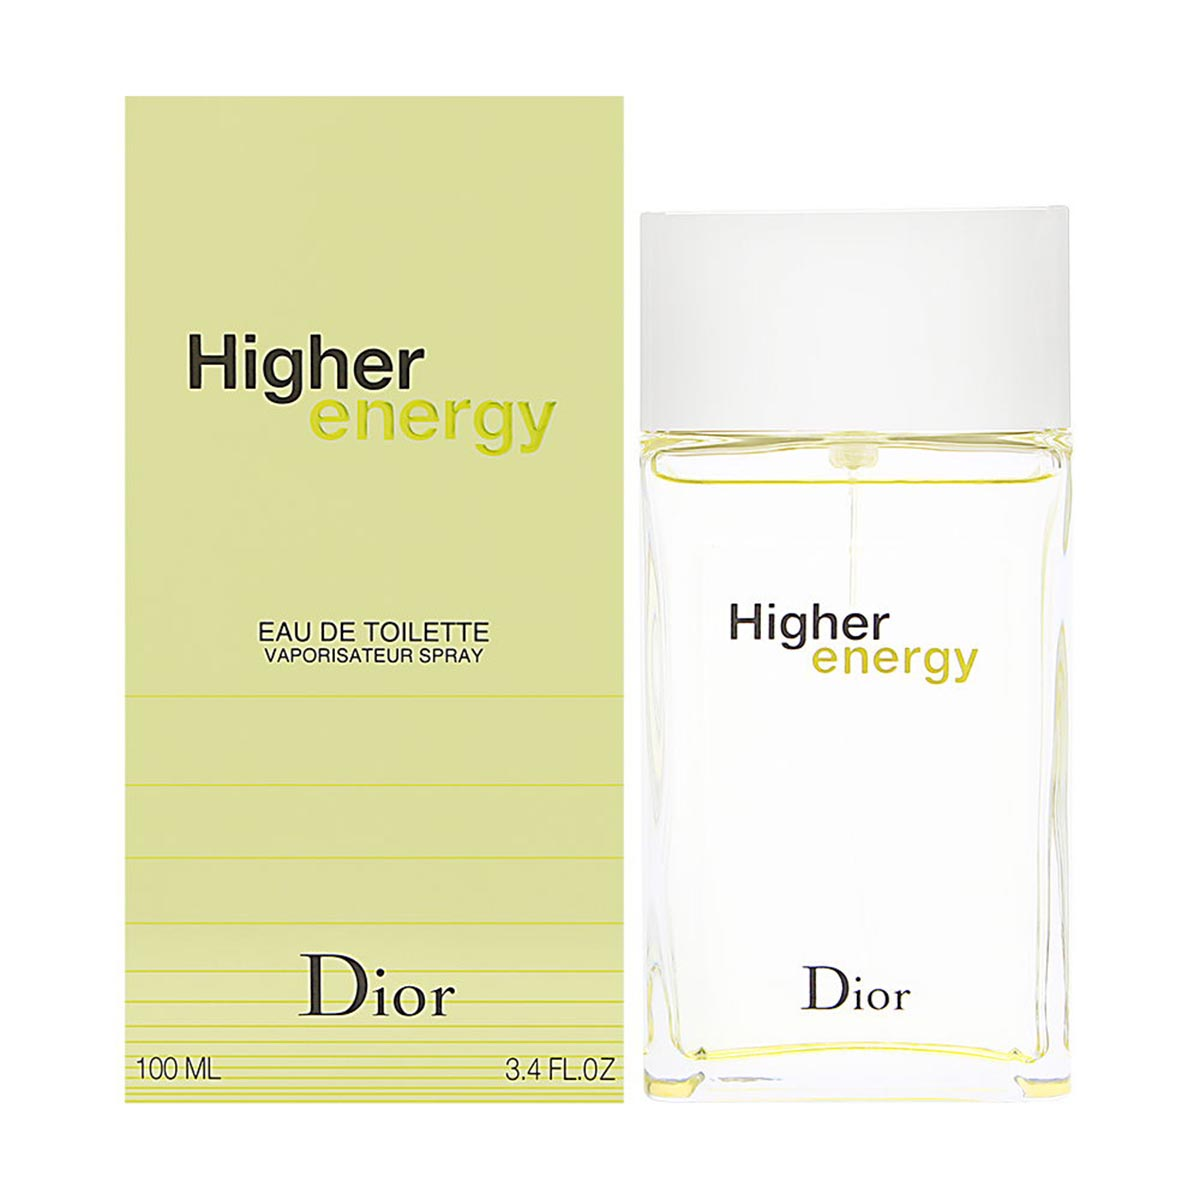 Dior higher energy eau de toilette 100ml vaporizador